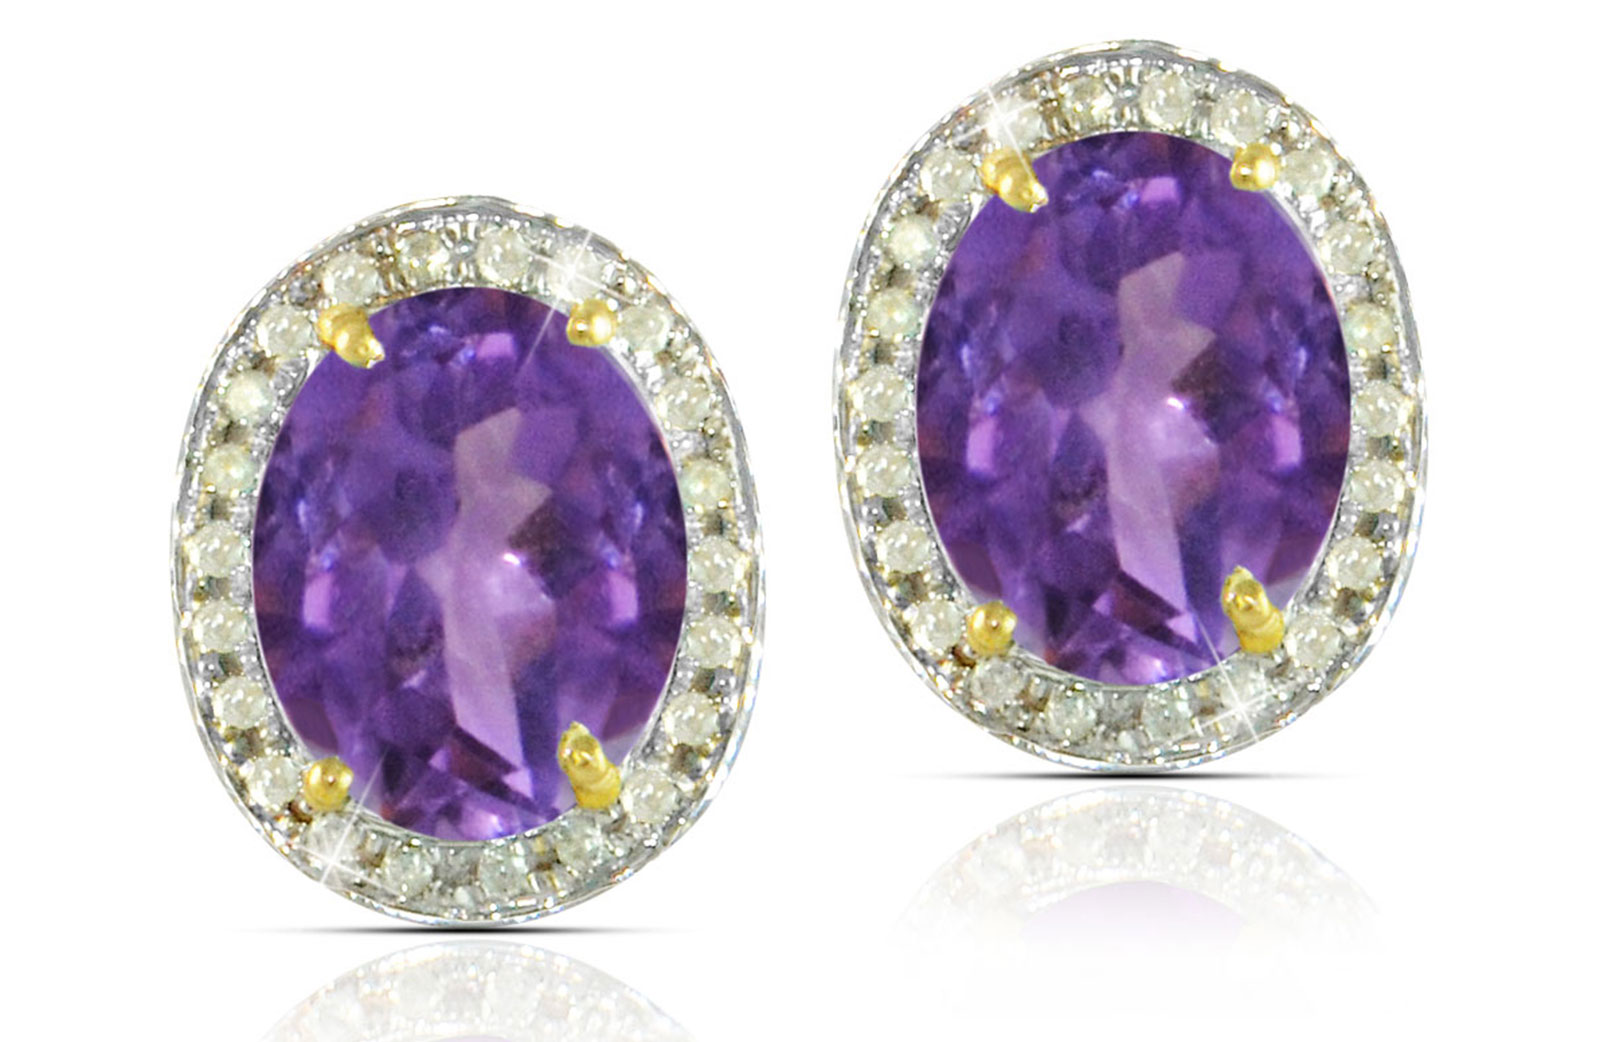 Vera Perla 18k  Gold 10mm Genuine Oval  Cut Amethyst 0.24Ct Genuine Diamonds earrings